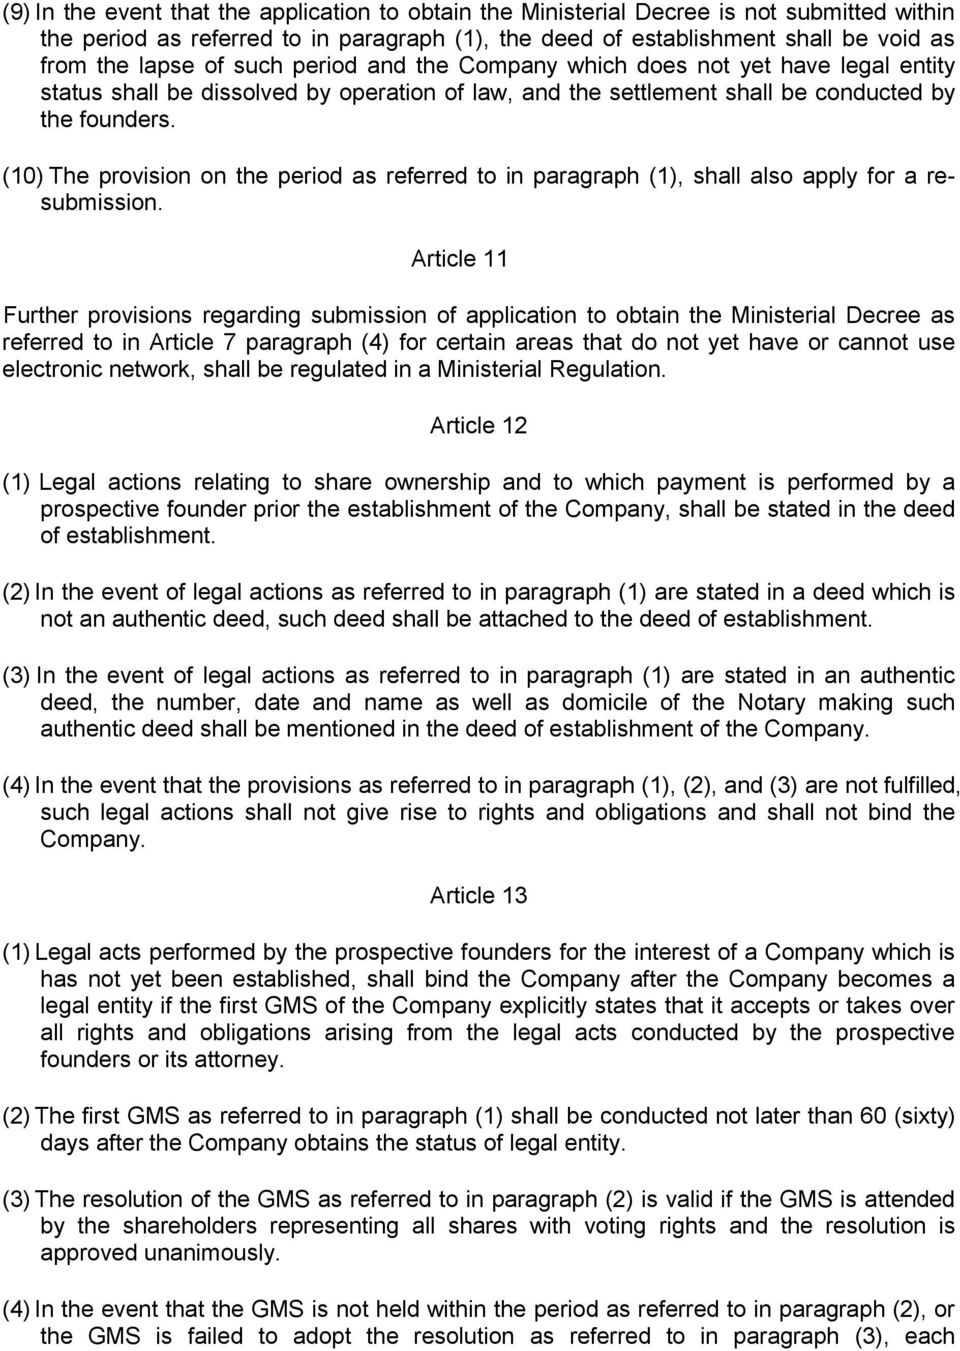 (10) The provision on the period as referred to in paragraph (1), shall also apply for a resubmission.